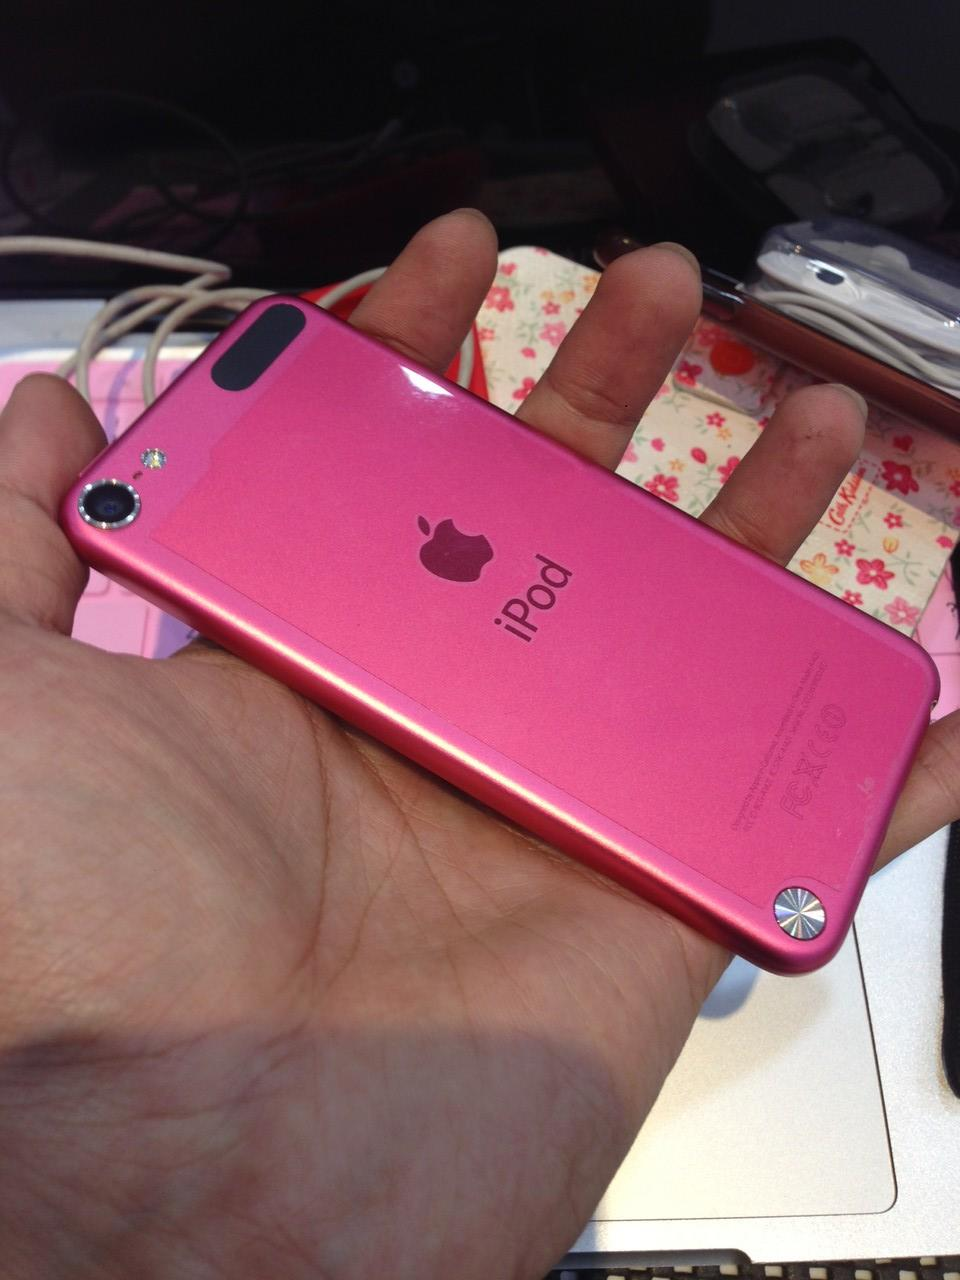 iPod touch 5 pink 32 GB fulset free casing 3 kondisi 99%